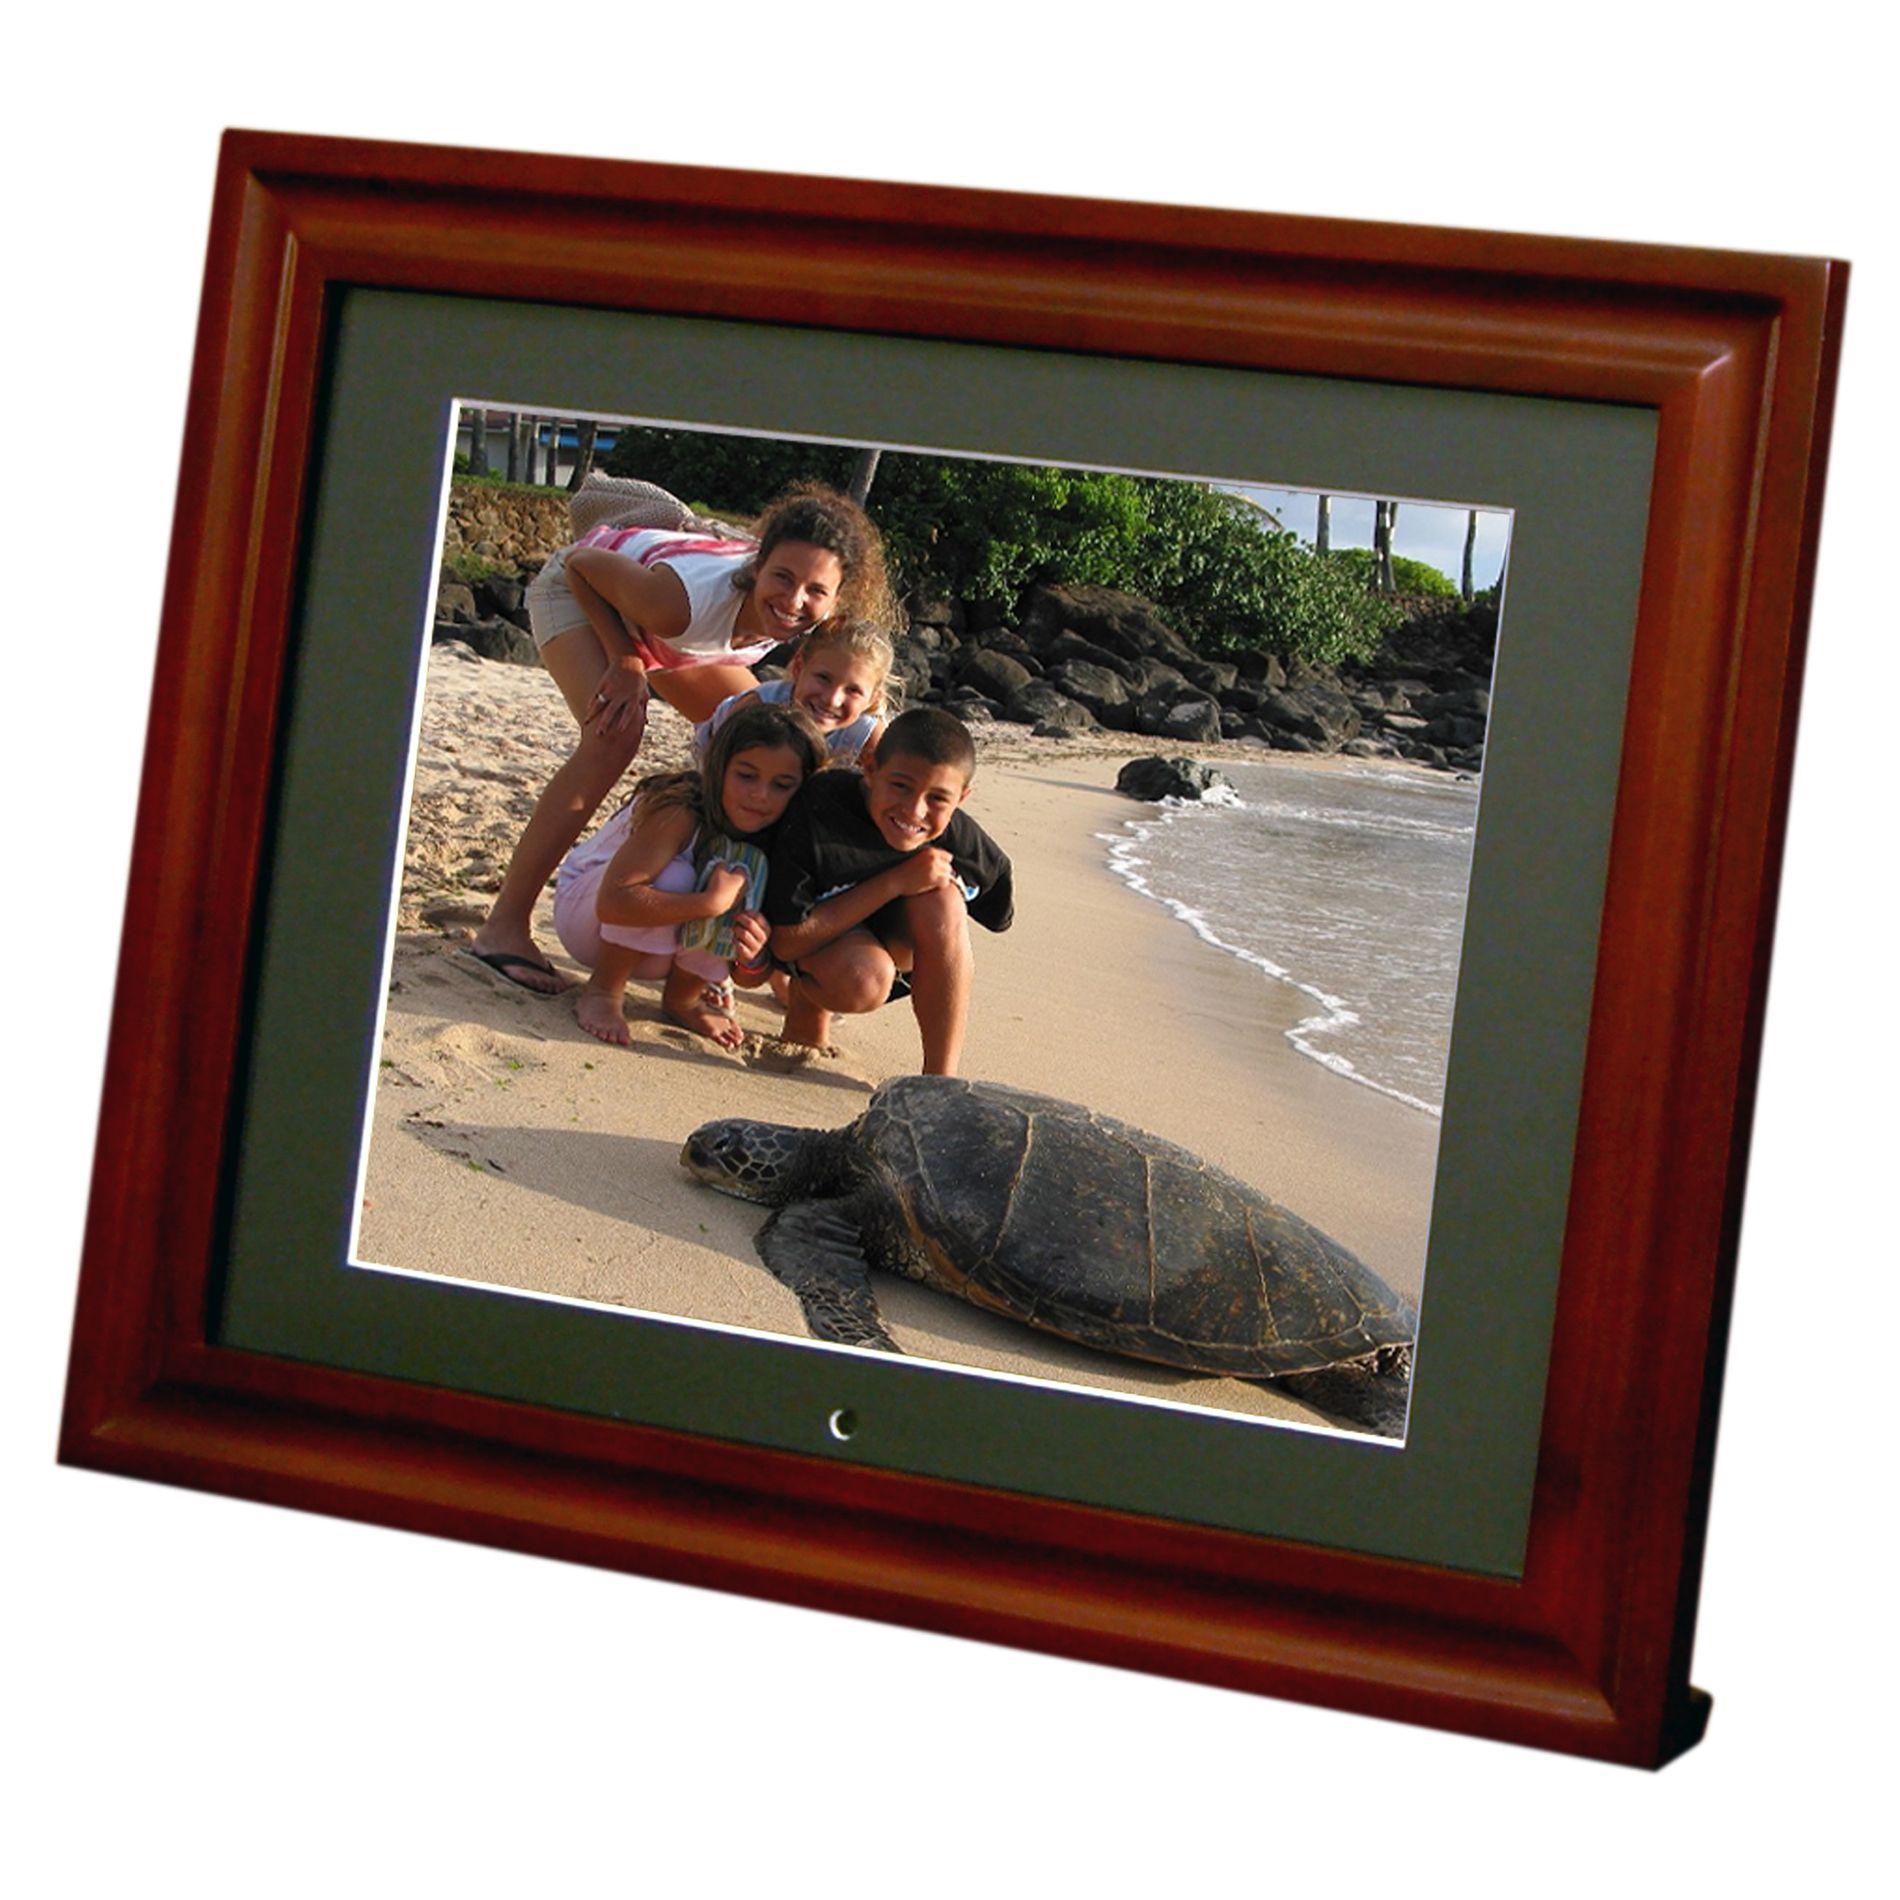 Kmart Digital Photo Frame Portable Usa 15 Quot Wooden Bluetooth Wireless Digital Picture